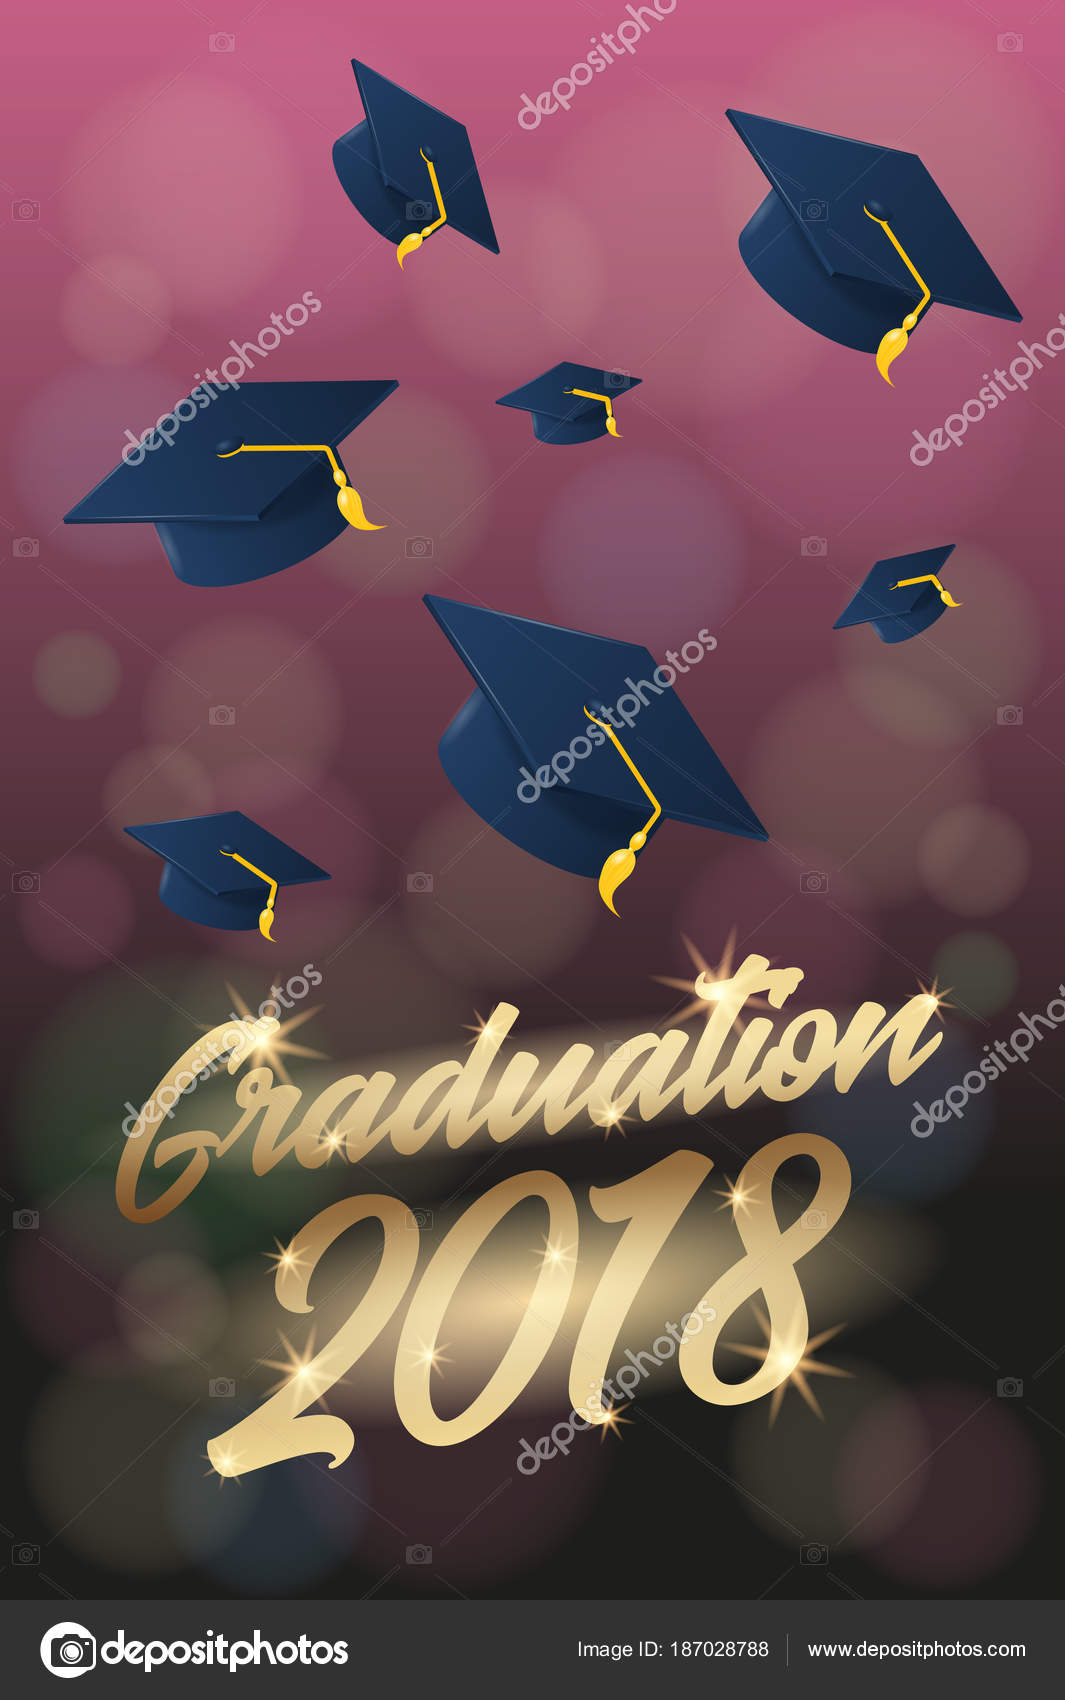 graduation mortar board template.html